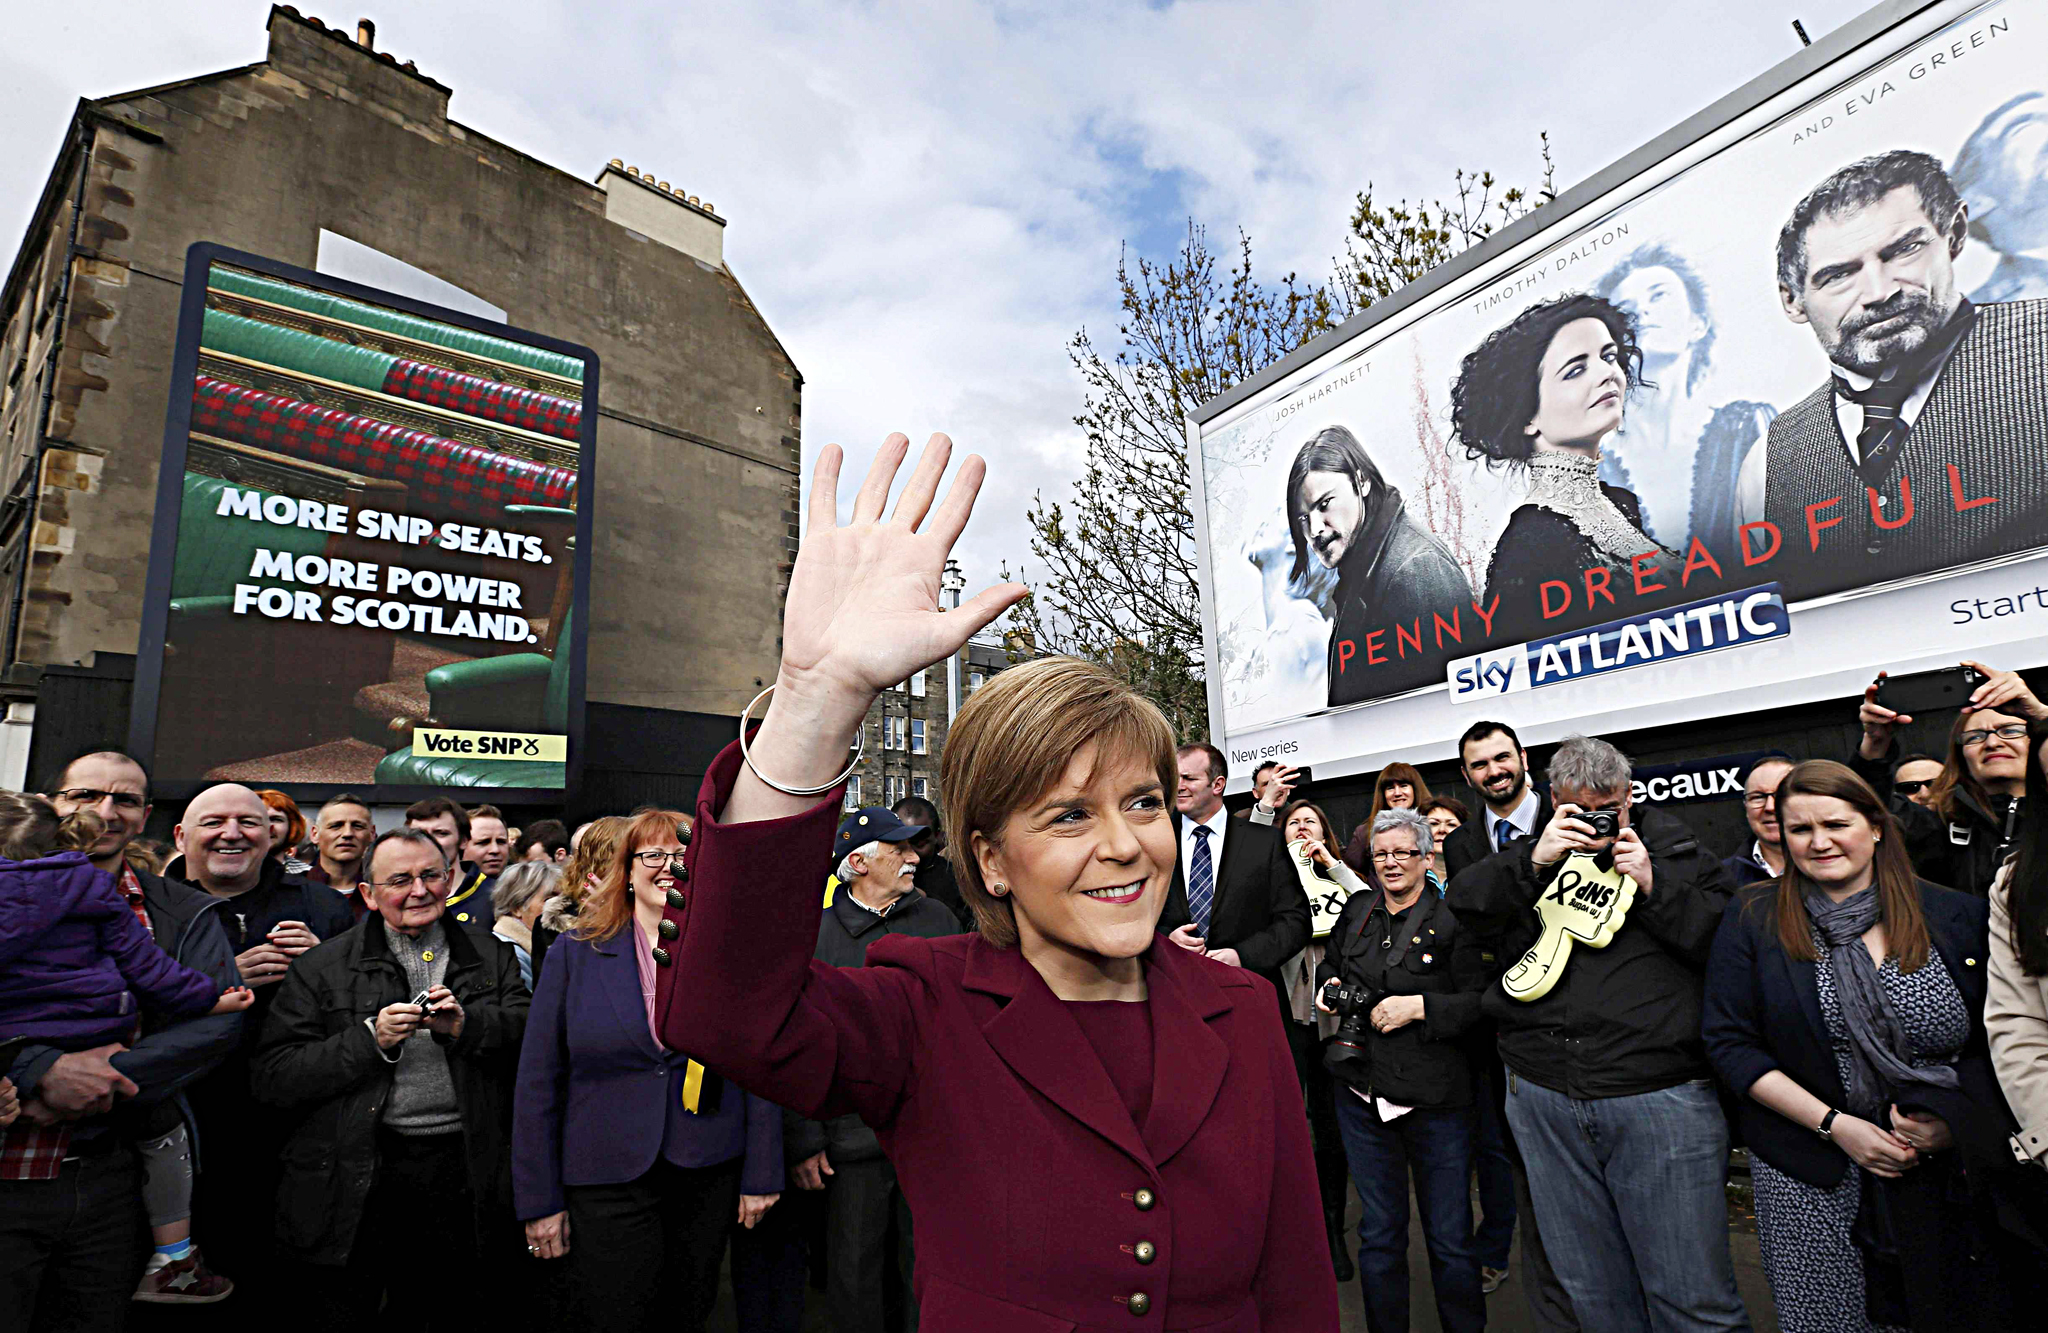 Nicola Sturgeon, the leader of the Scottish National Party, launches her party's final poster at a campaign event in Leith Walk Edinburgh, Scotland...Nicola Sturgeon, the leader of the Scottish National Party, launches her party's final poster at a campaign event in Leith Walk Edinburgh, Scotland, April 30, 2015. REUTERS/Russell Cheyne